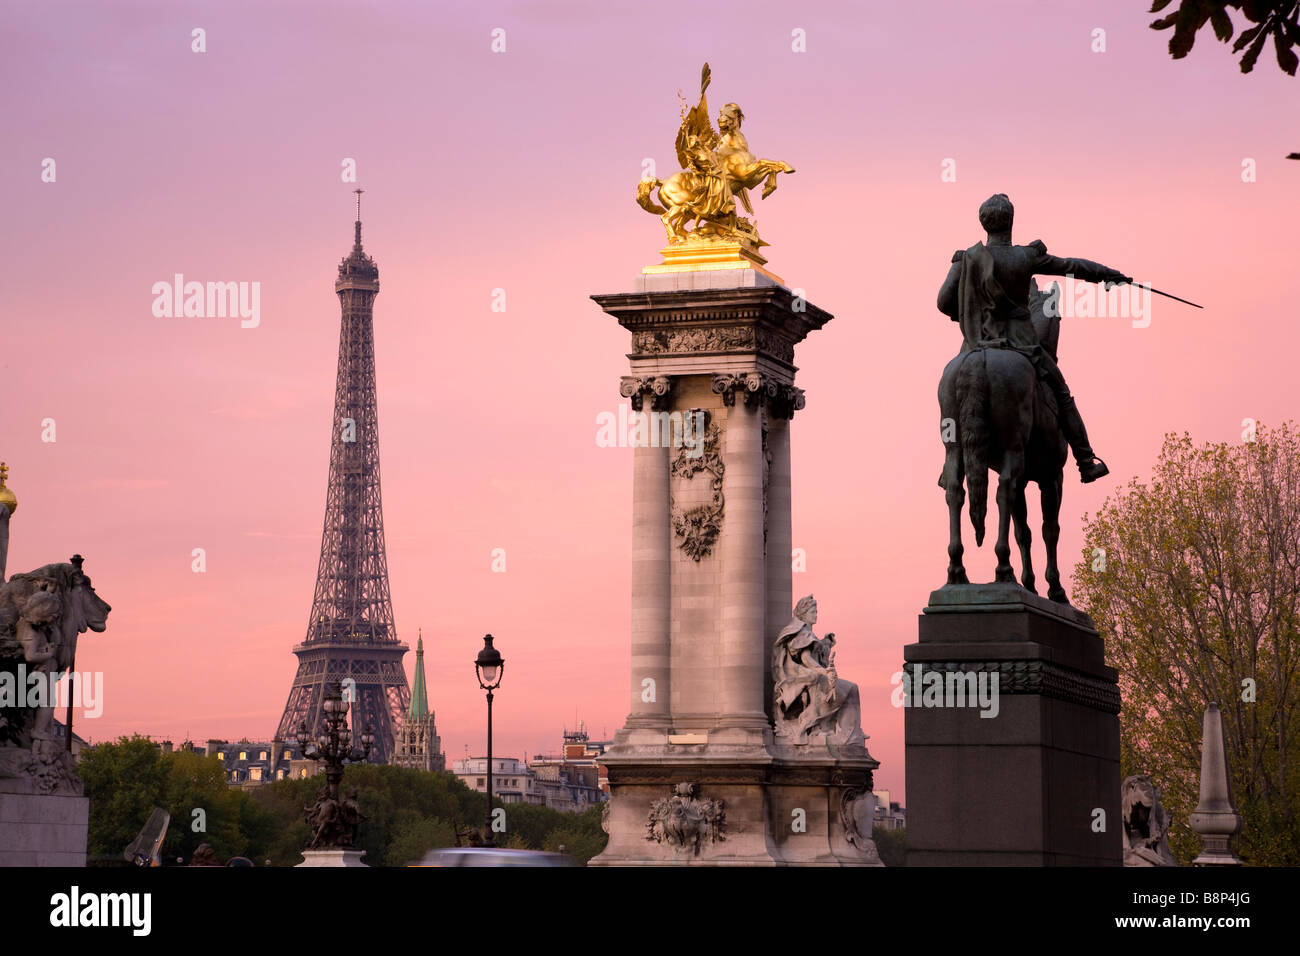 Eiffel Tower viewed from Pont Alexandre lll Paris France - Stock Image